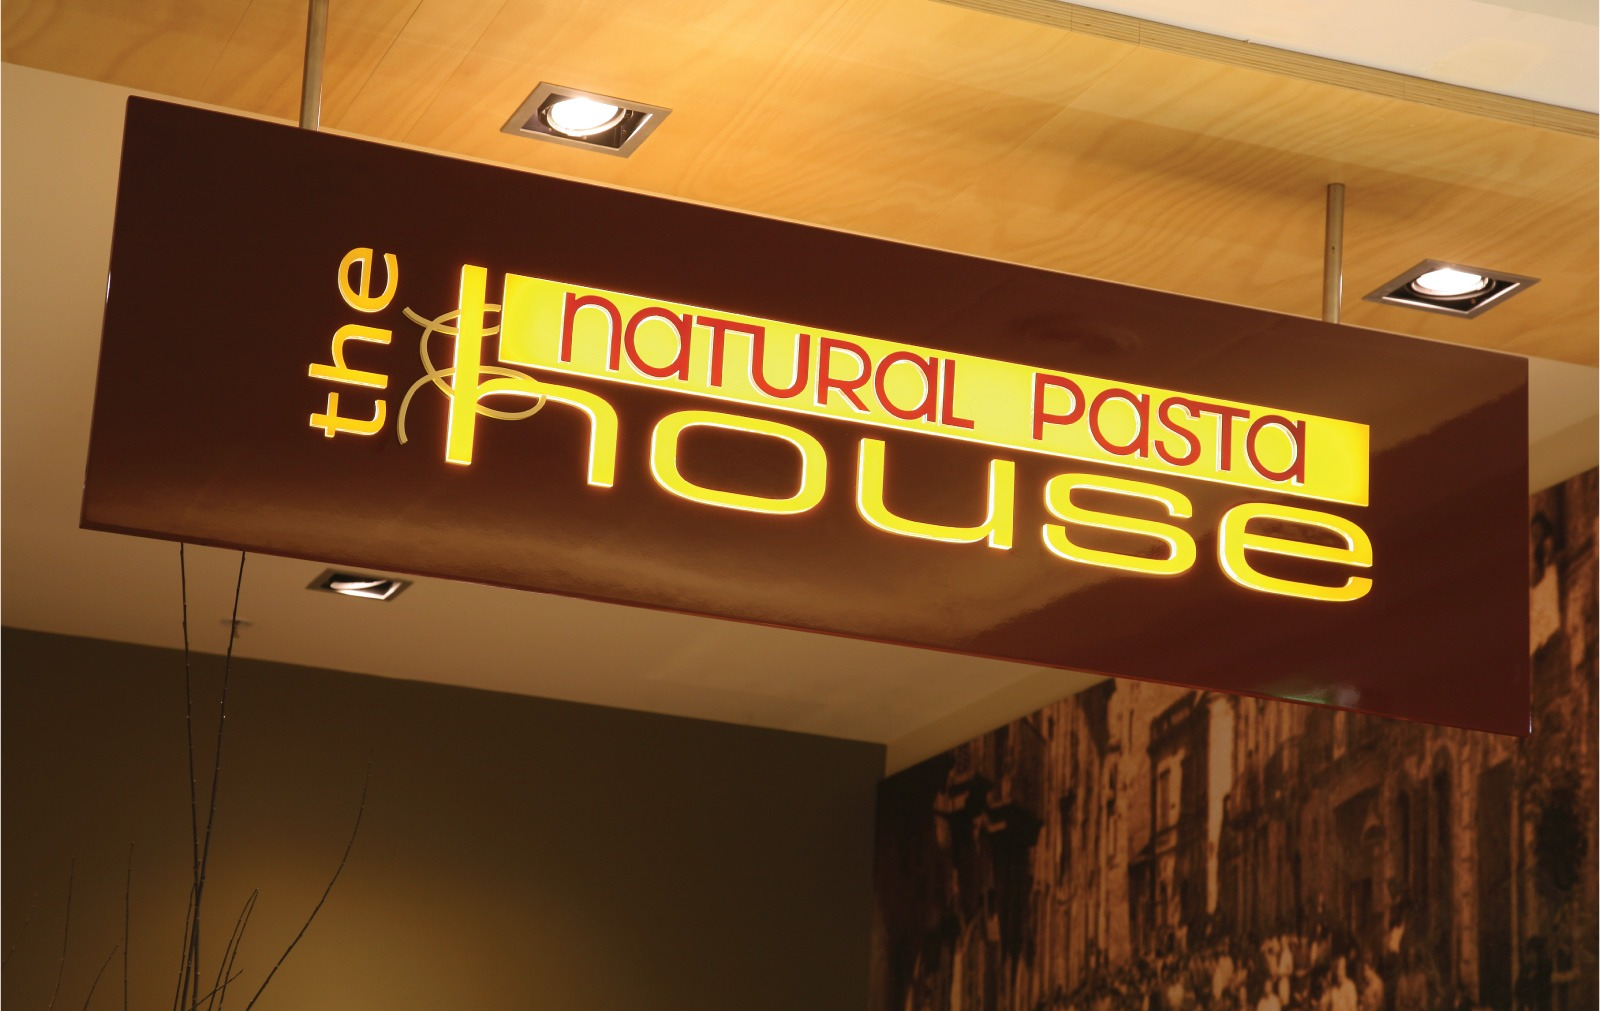 The-natural-pasta-house-interior-studio-tbac3